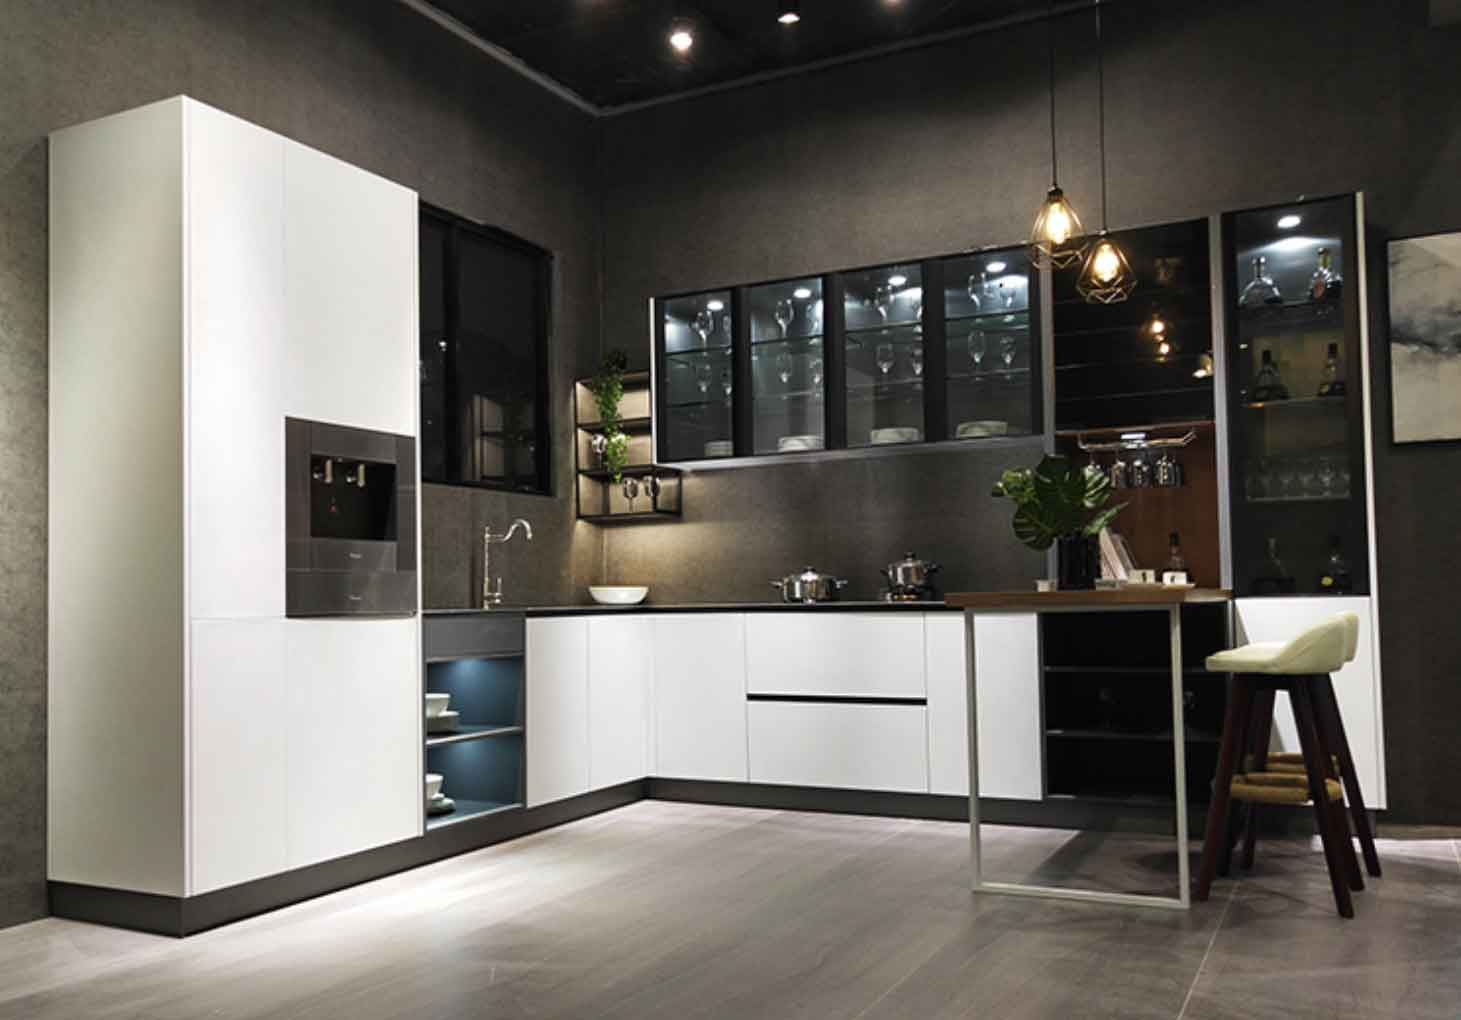 OEM Stainless Steel Kitchen Cabinet Manufacturer - Canlia ...